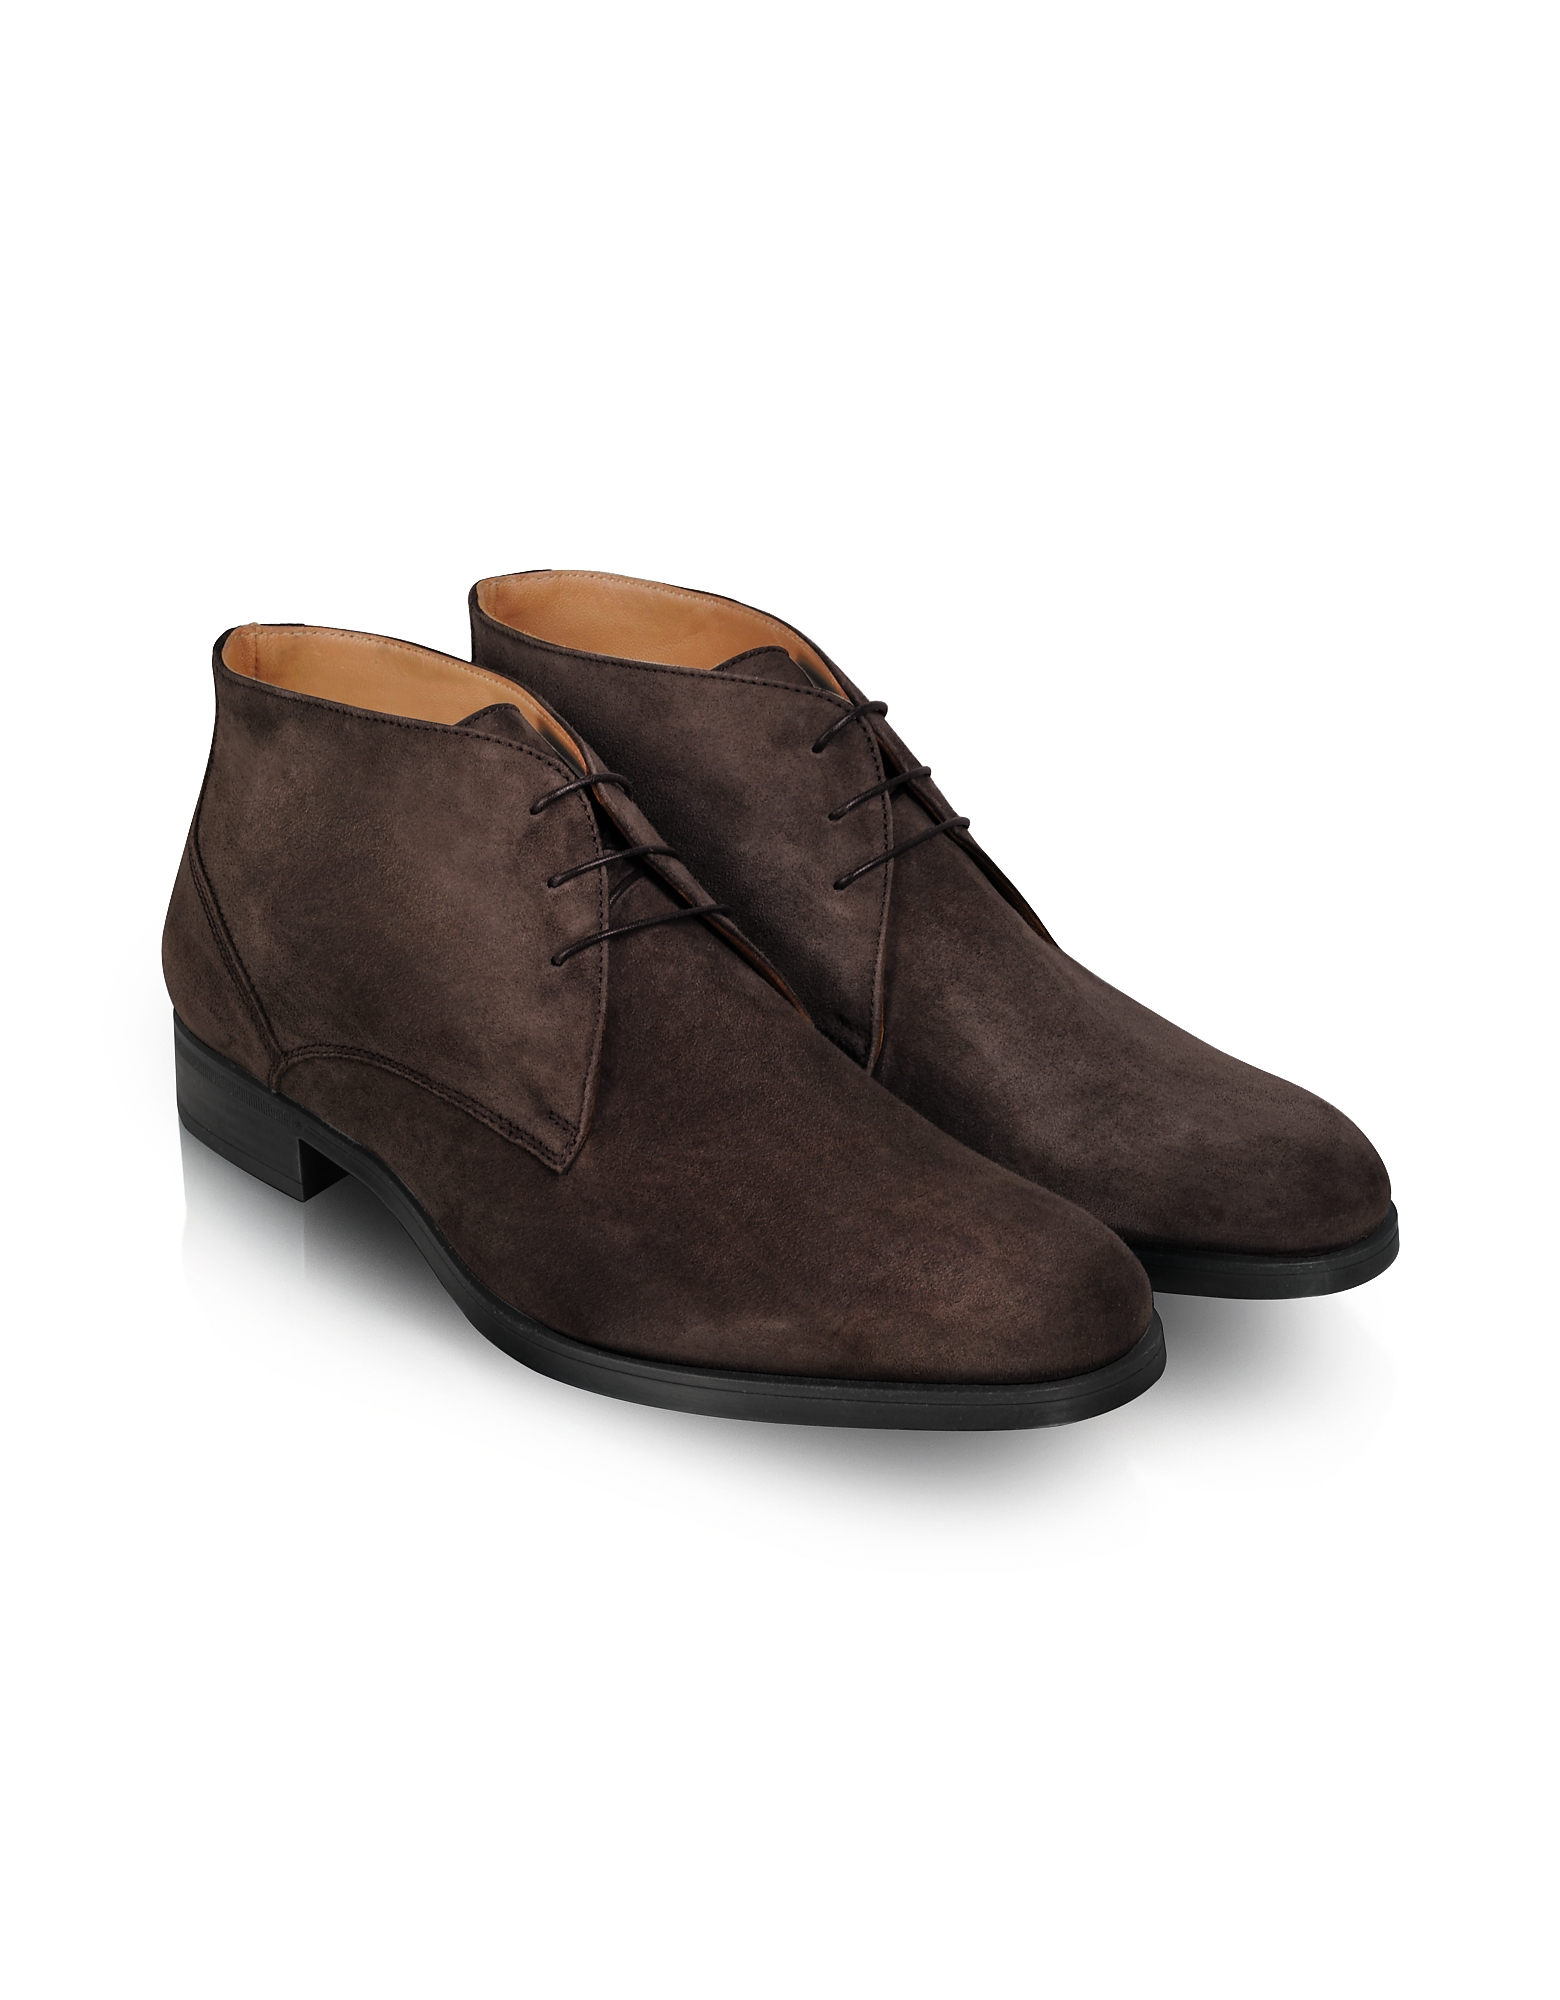 Moreschi Shoes, Stiria - Dark Brown Suede Ankle Boots